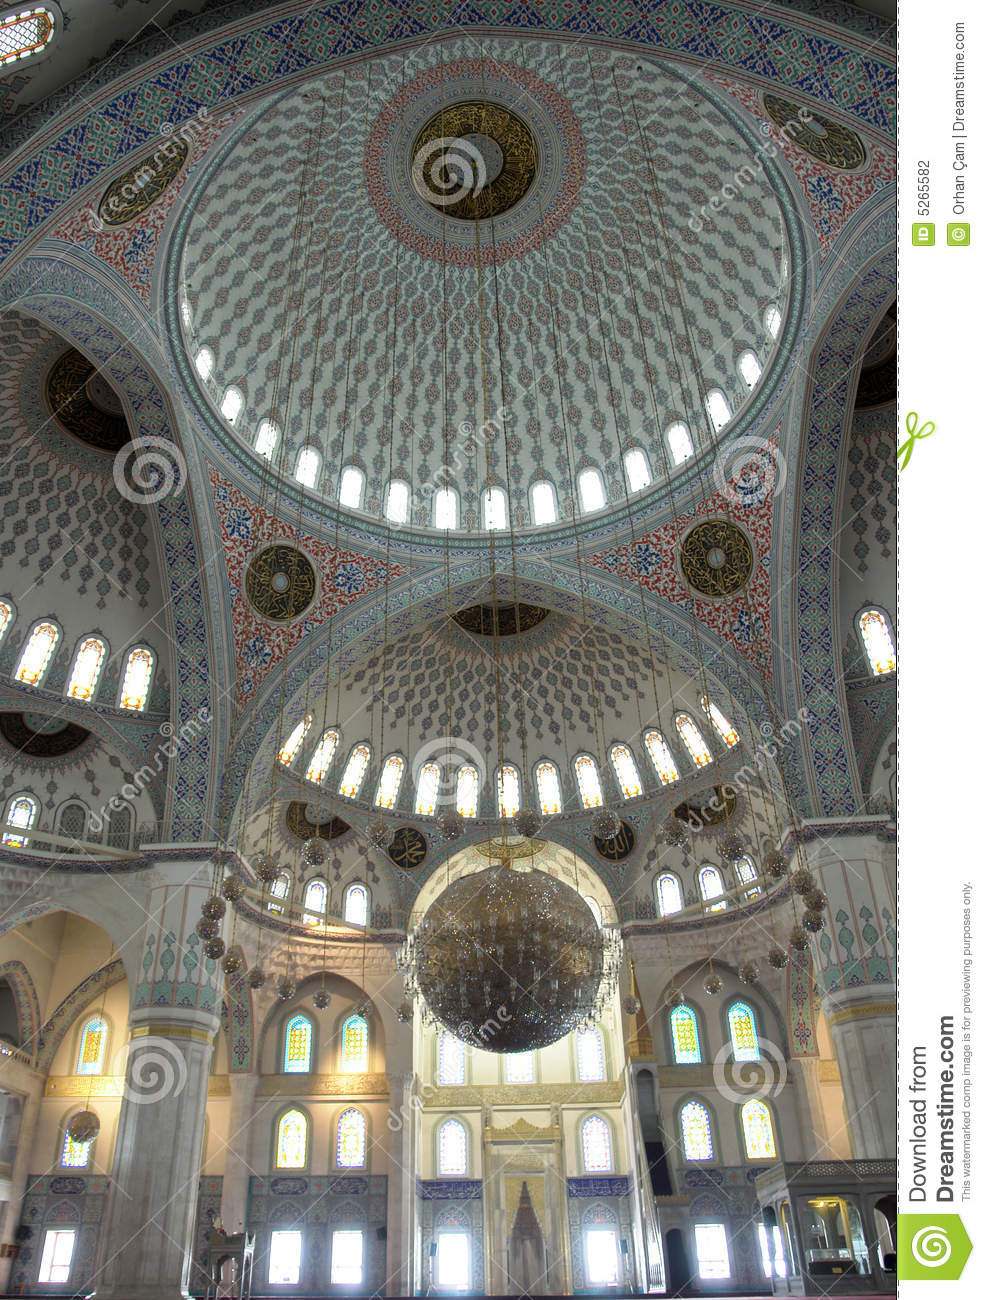 Non Muslim Perspective On The Revolution Of Imam Hussain: Inside Of Kocatepe Mosque In Ankara Turkey Stock